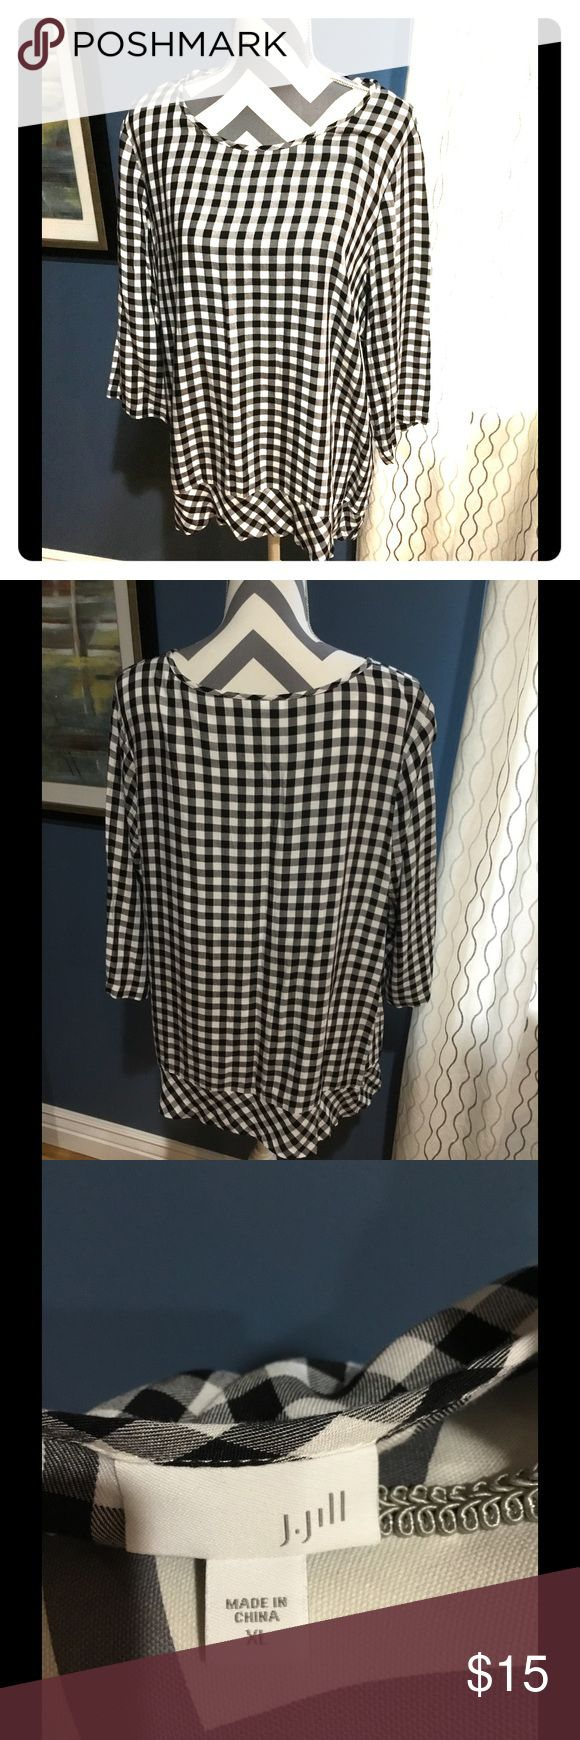 Ladies j Jill shirt Black and white  shirt. 3 quarter length sleeves. Small ruffle on bottom.  Excellent shape no tag but I don't remember wearing it. j jill Tops Blouses